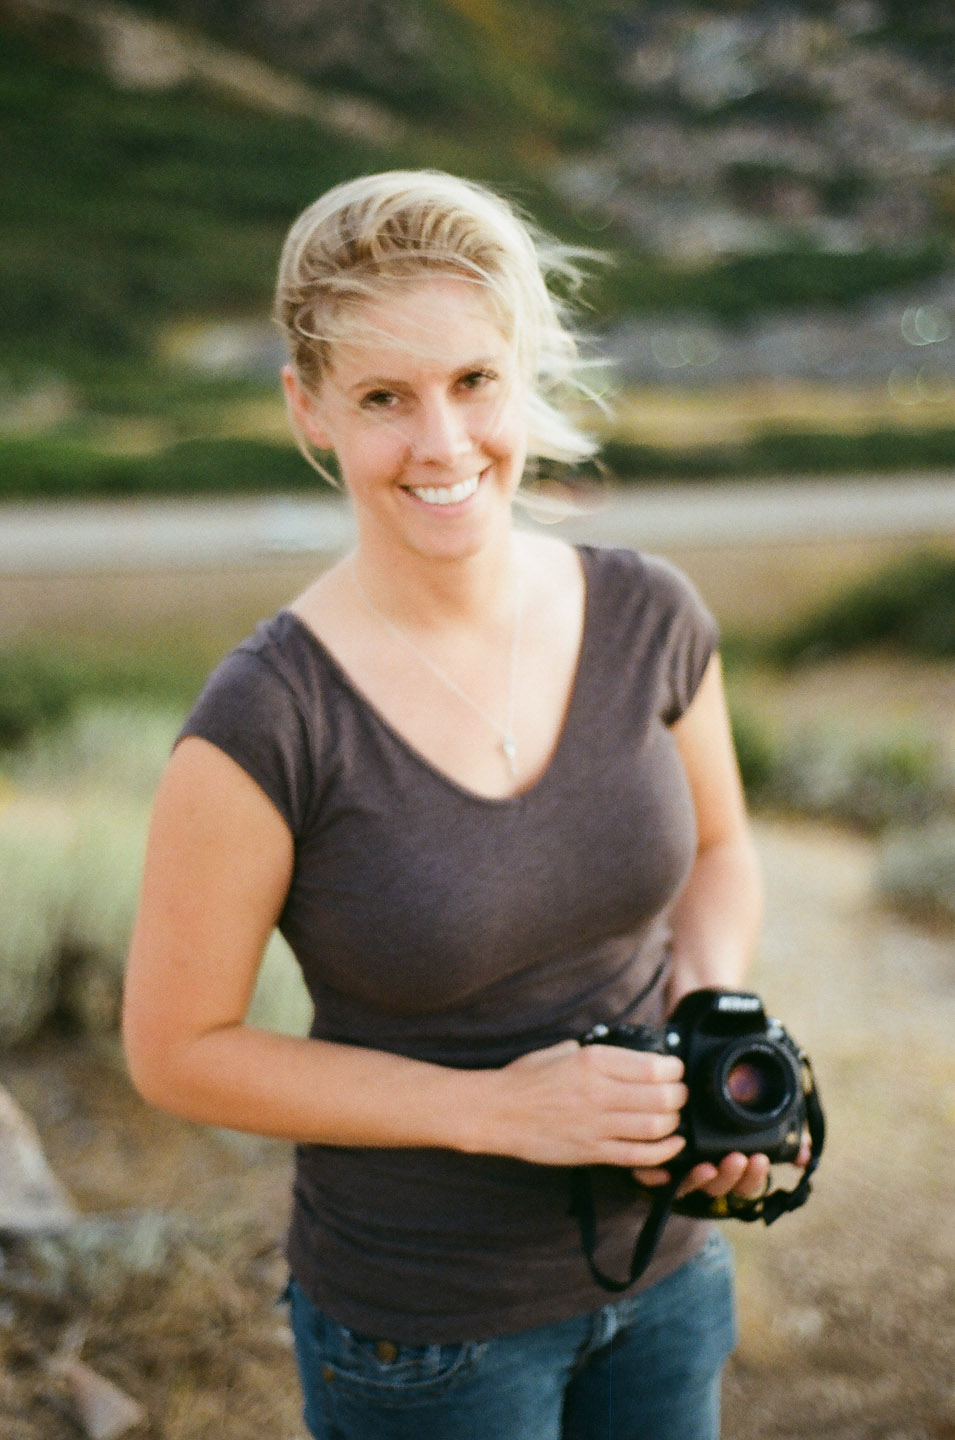 Photographer on 35mm color film